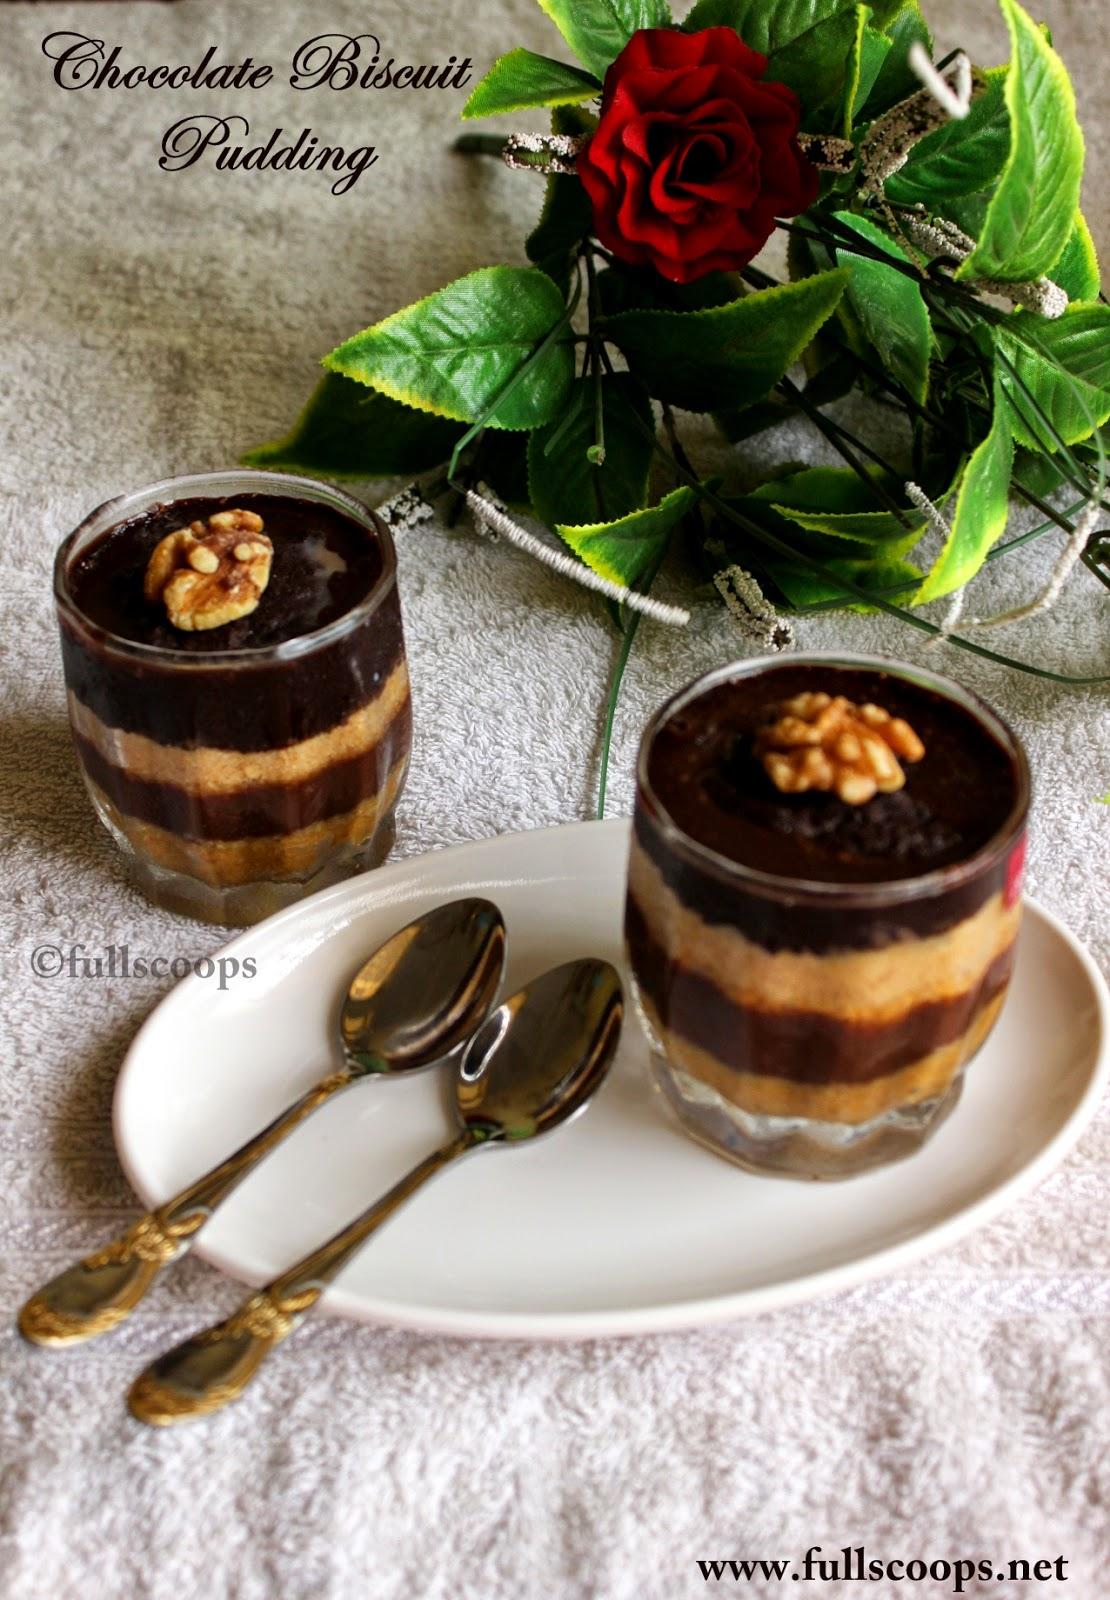 Chocolate Biscuit Pudding